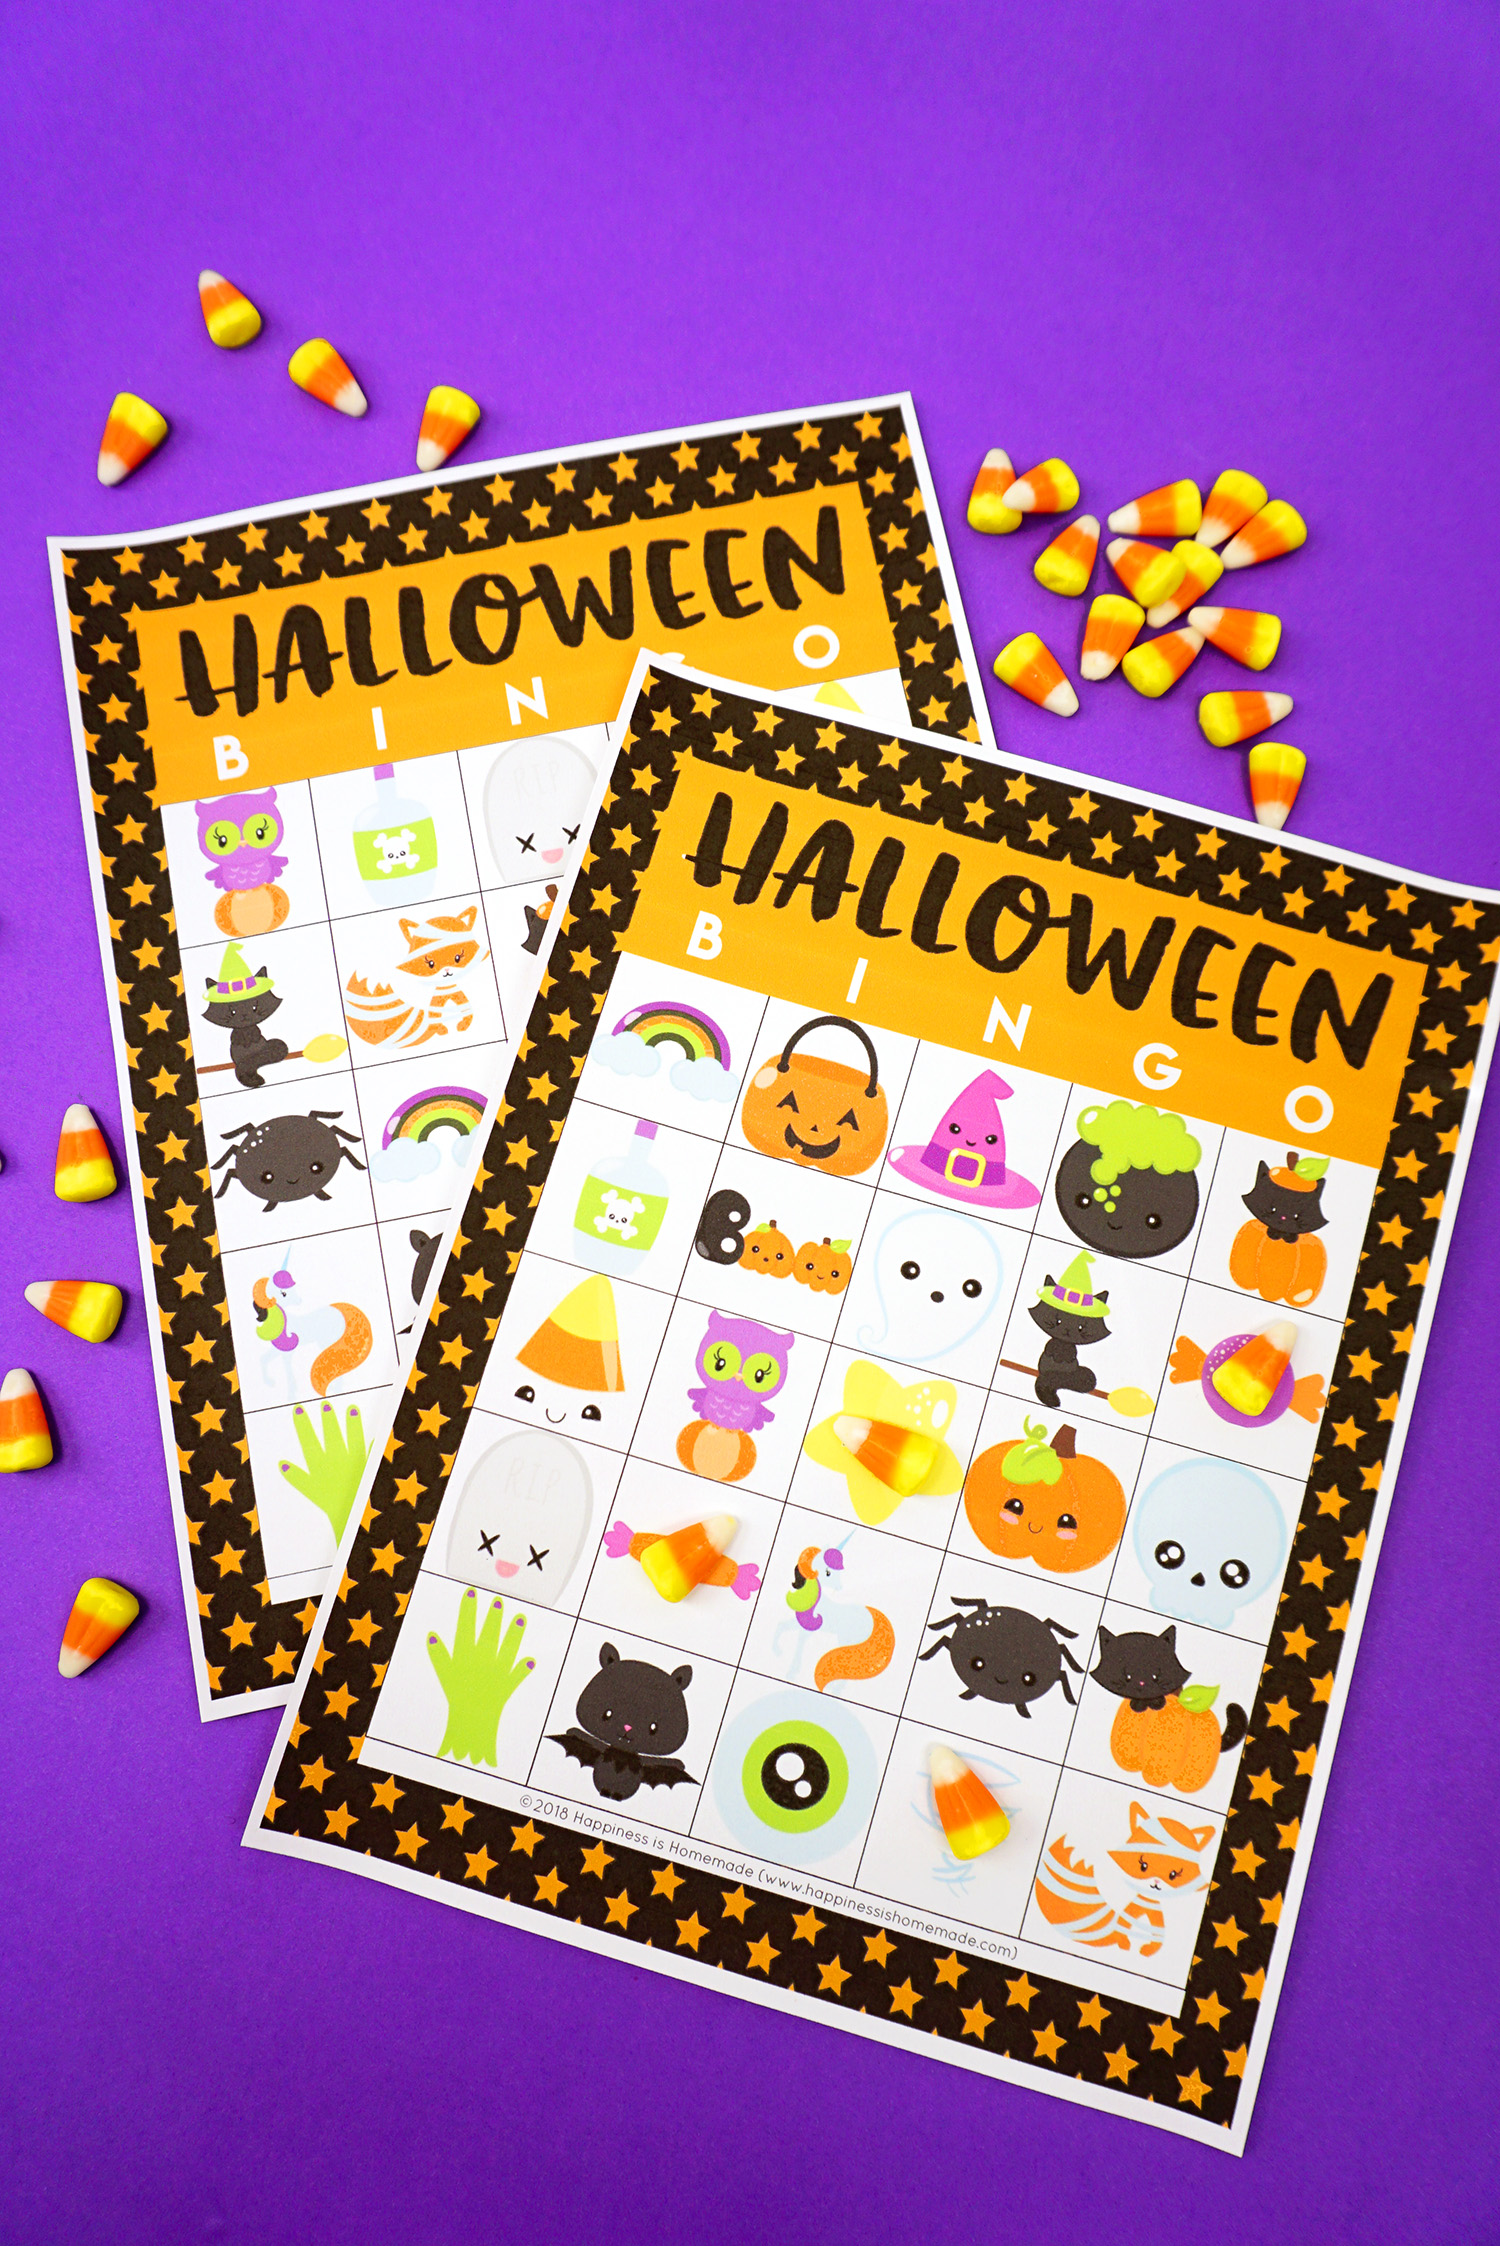 image about Printable Bingo Cards for Kids referred to as Printable Halloween Bingo Playing cards - Joy is Selfmade